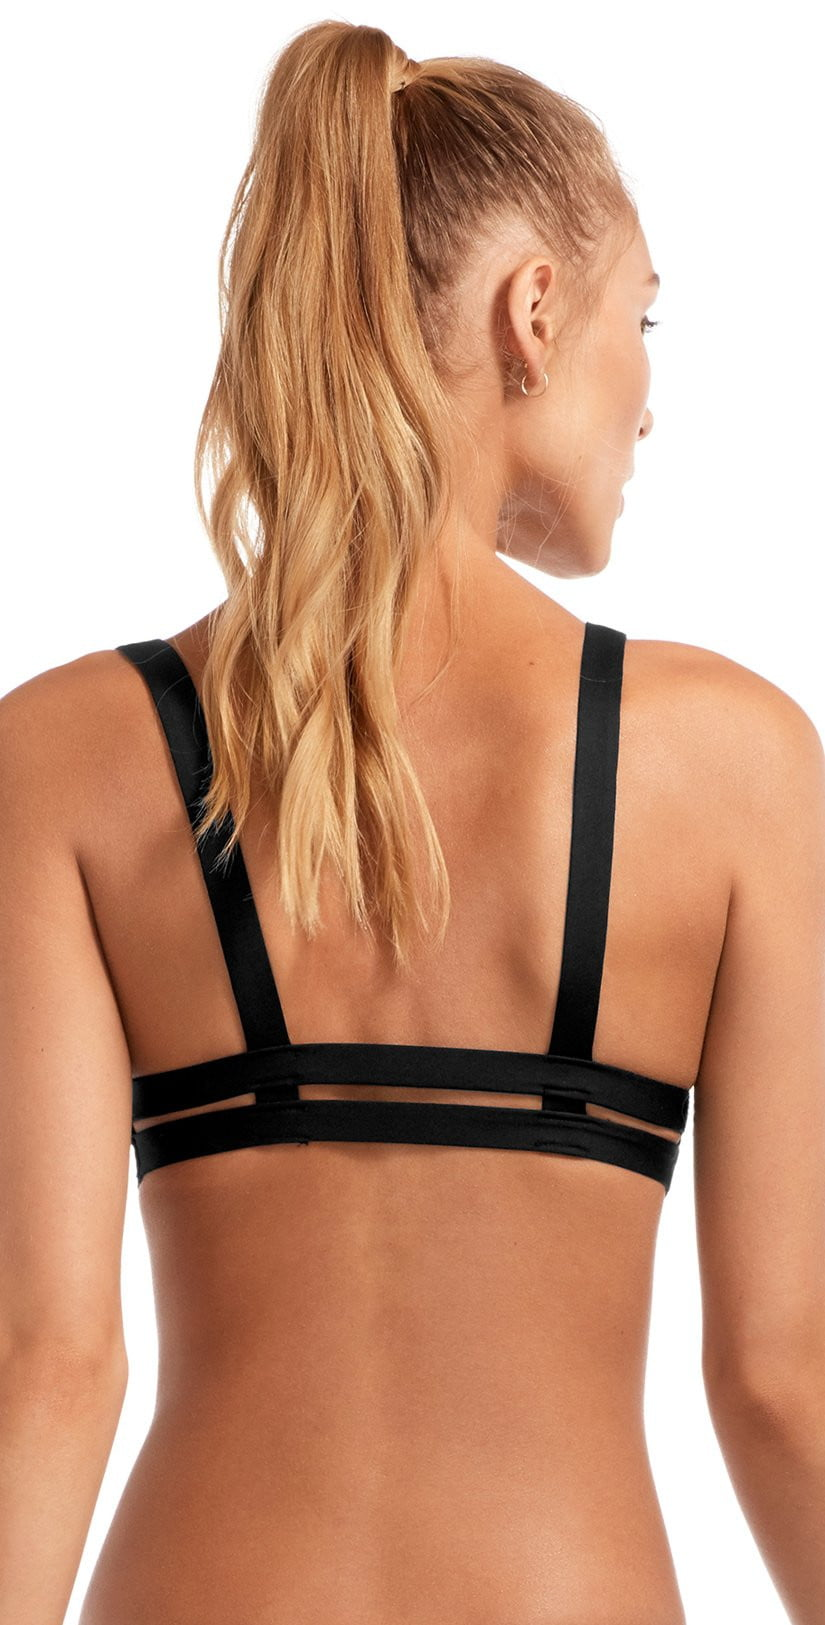 Vitamin A EcoLux Neutra Bralette Top in Black 40T ECB back view